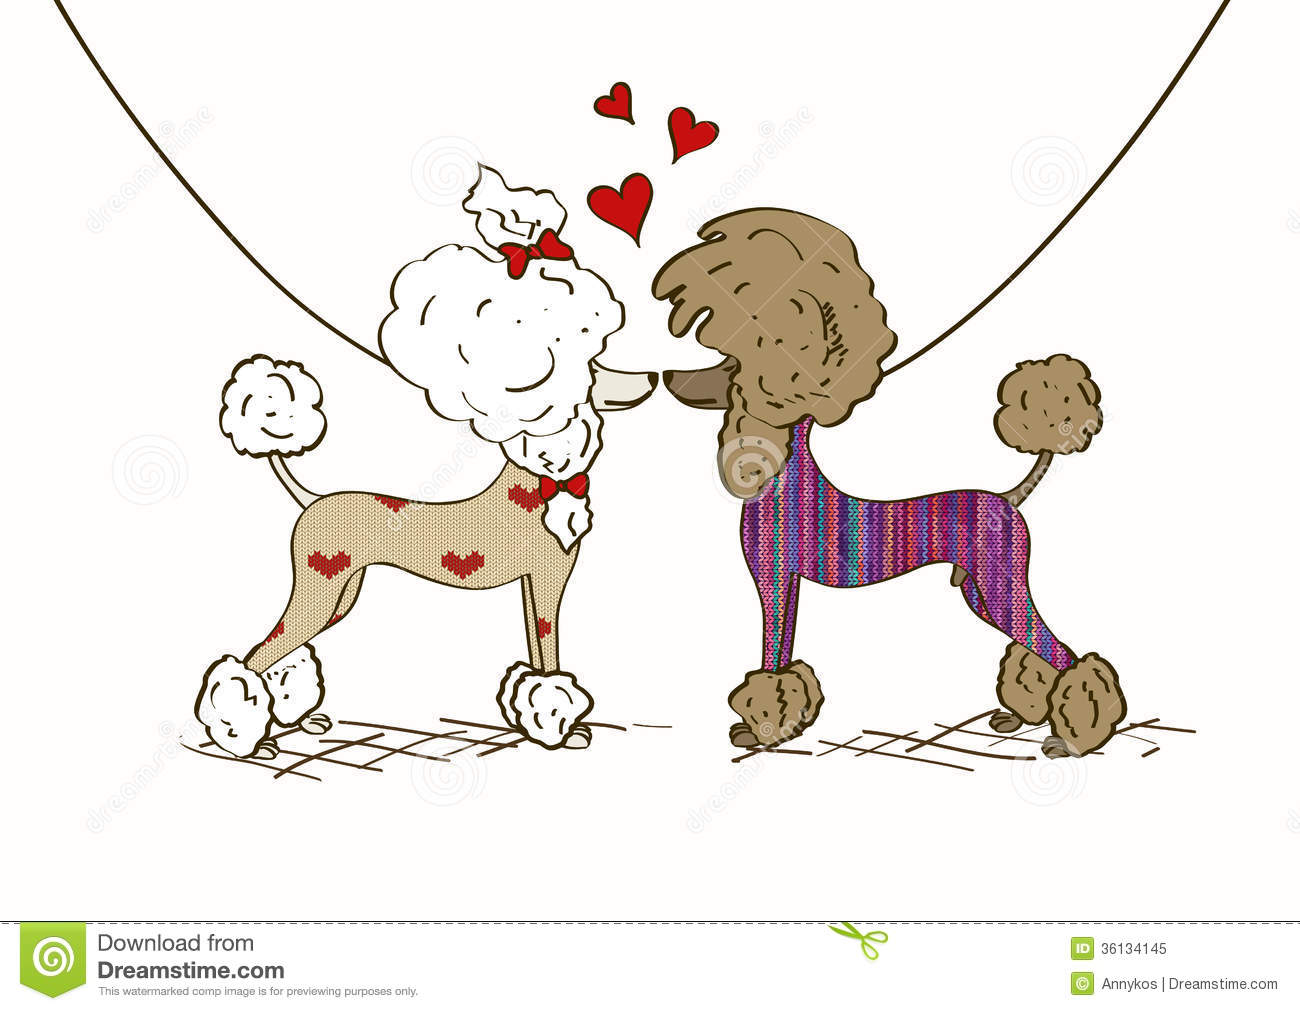 ... illustration of two lovers Poodle dogs dressed in knitted clothes